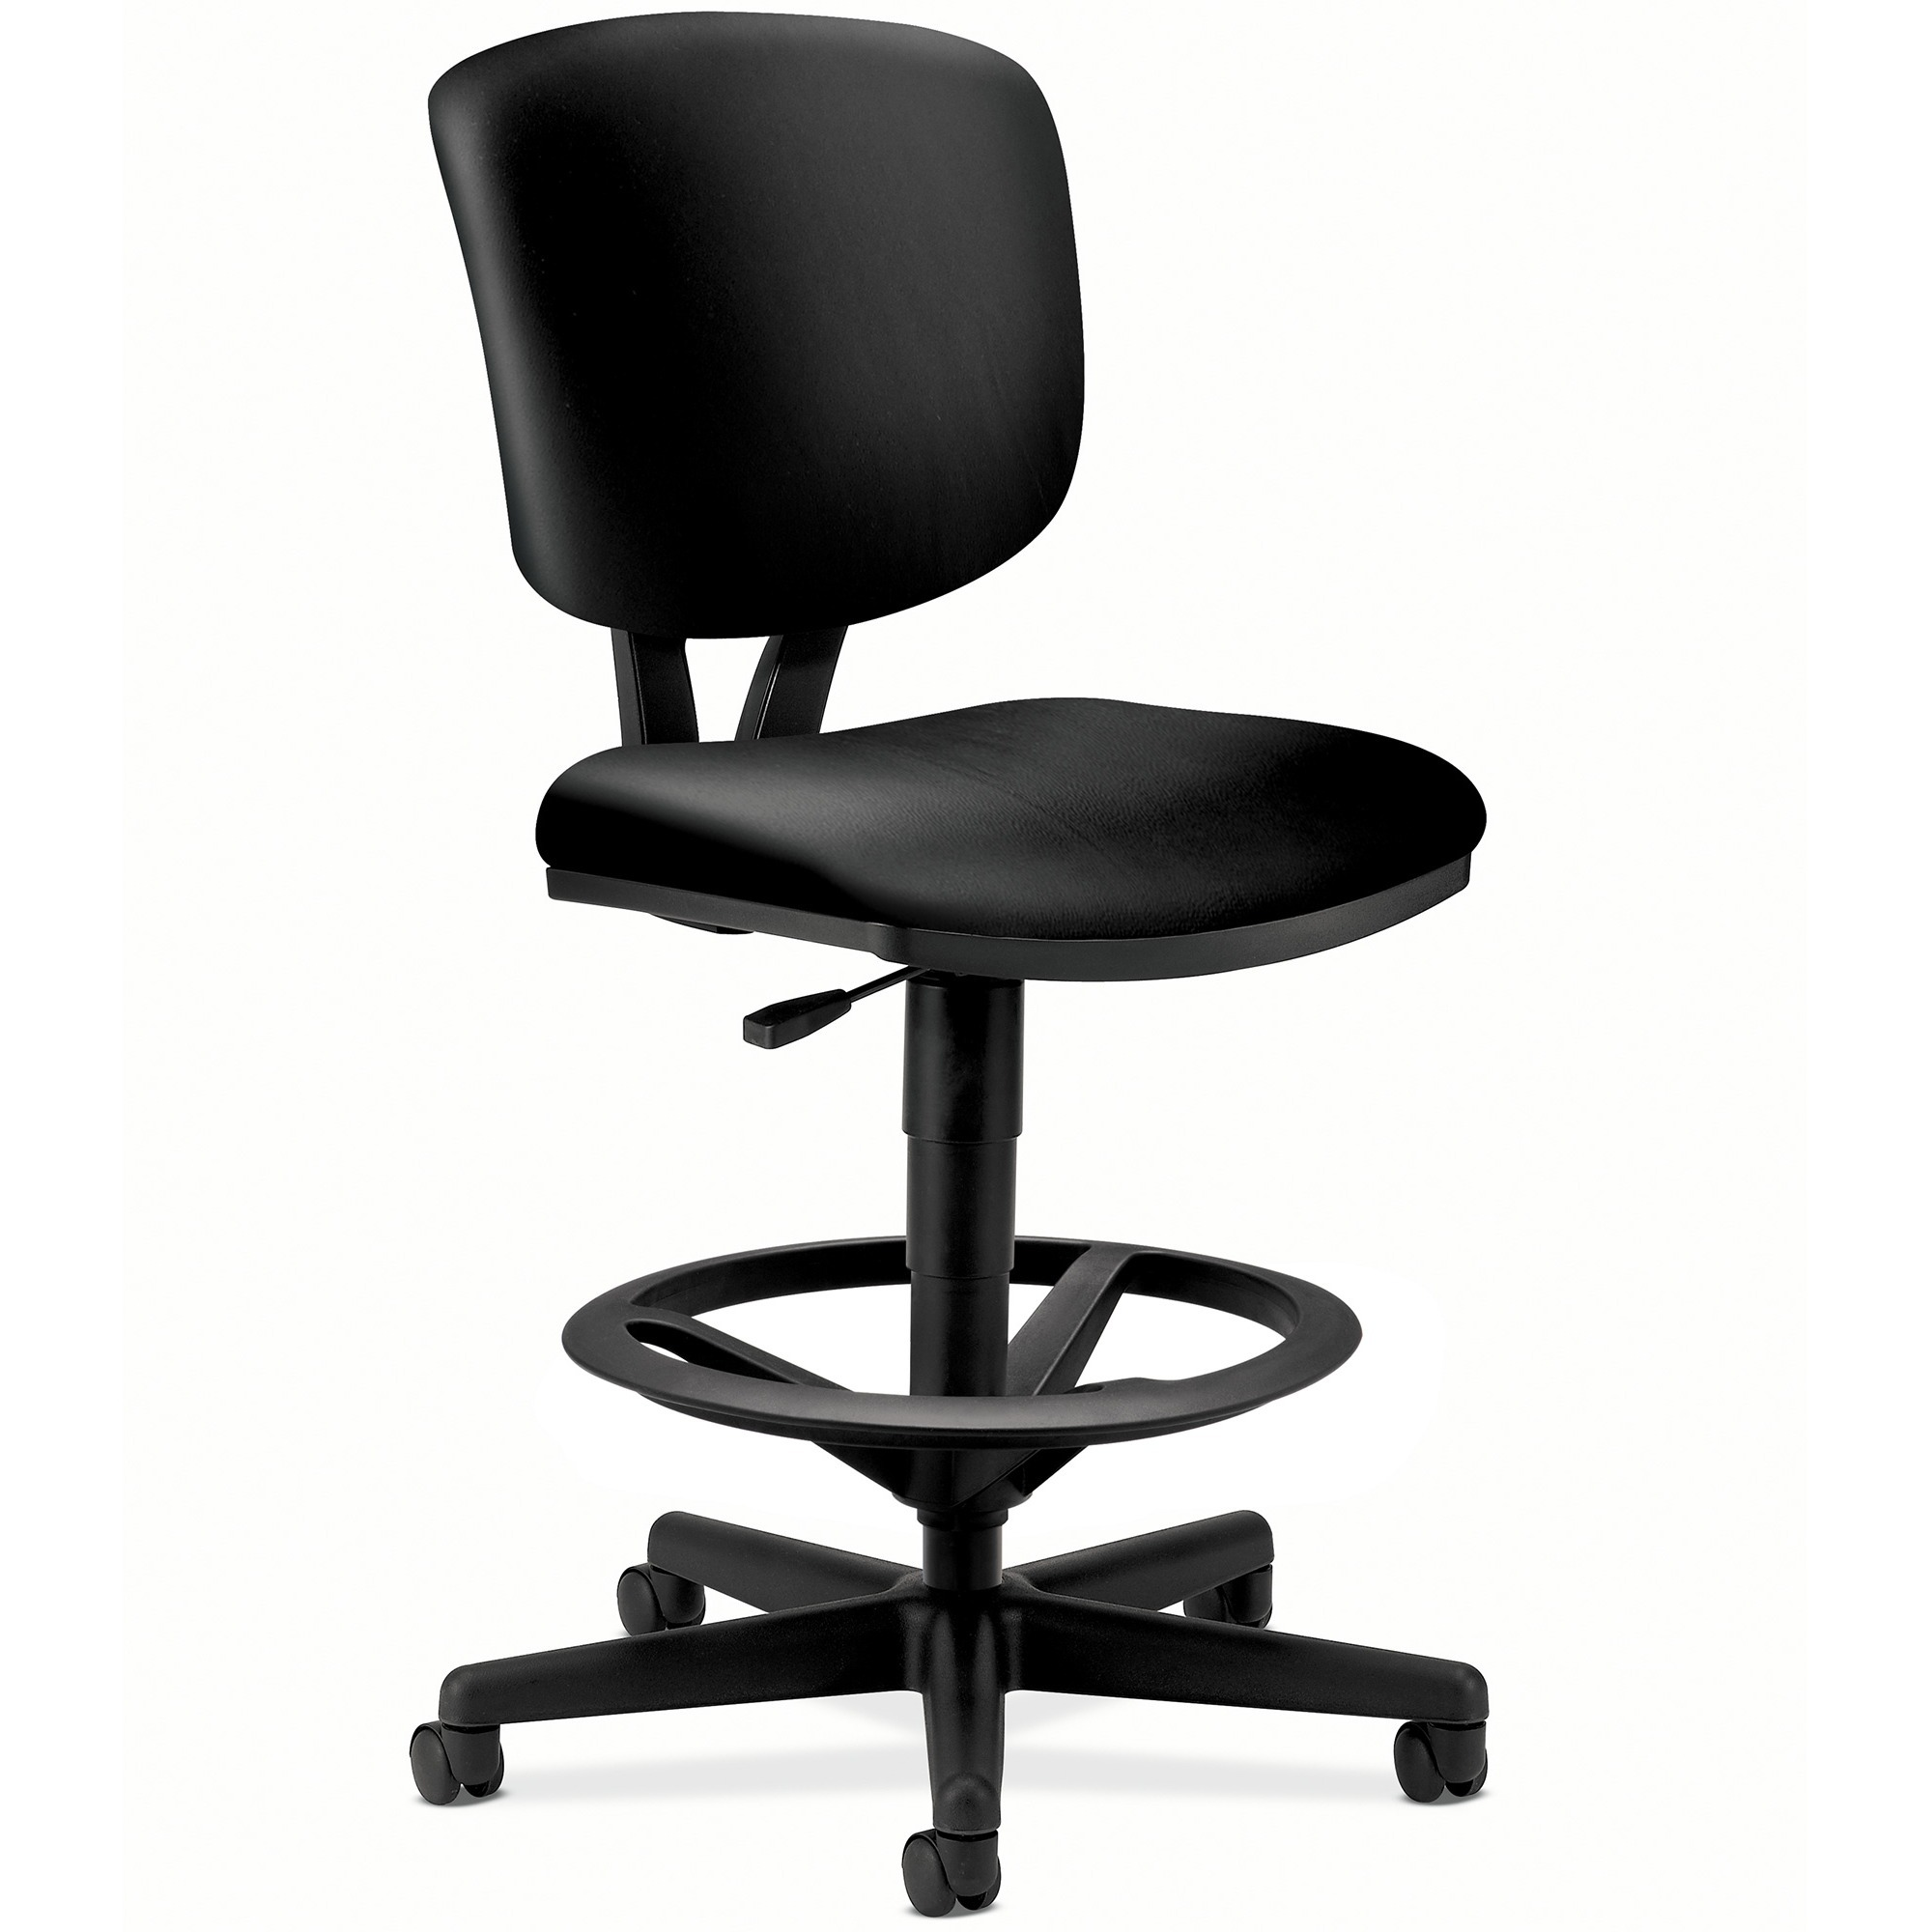 Office Furniture for all your needs